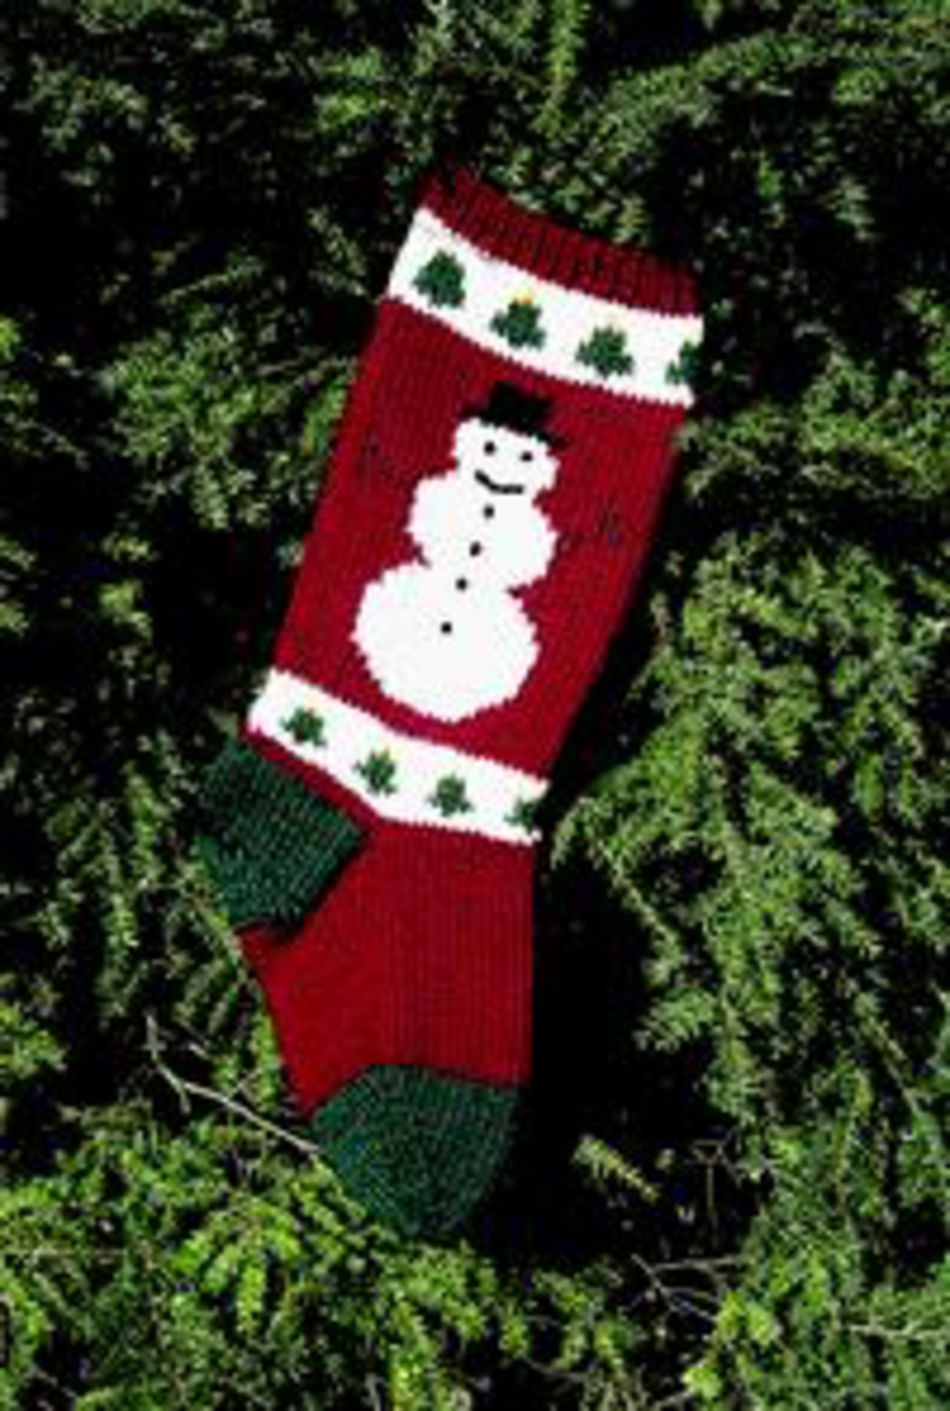 There are many tutorials and books available online for creating these crochet Christmas stocking patterns. You could get a clear idea by watching and following the video tutorials.